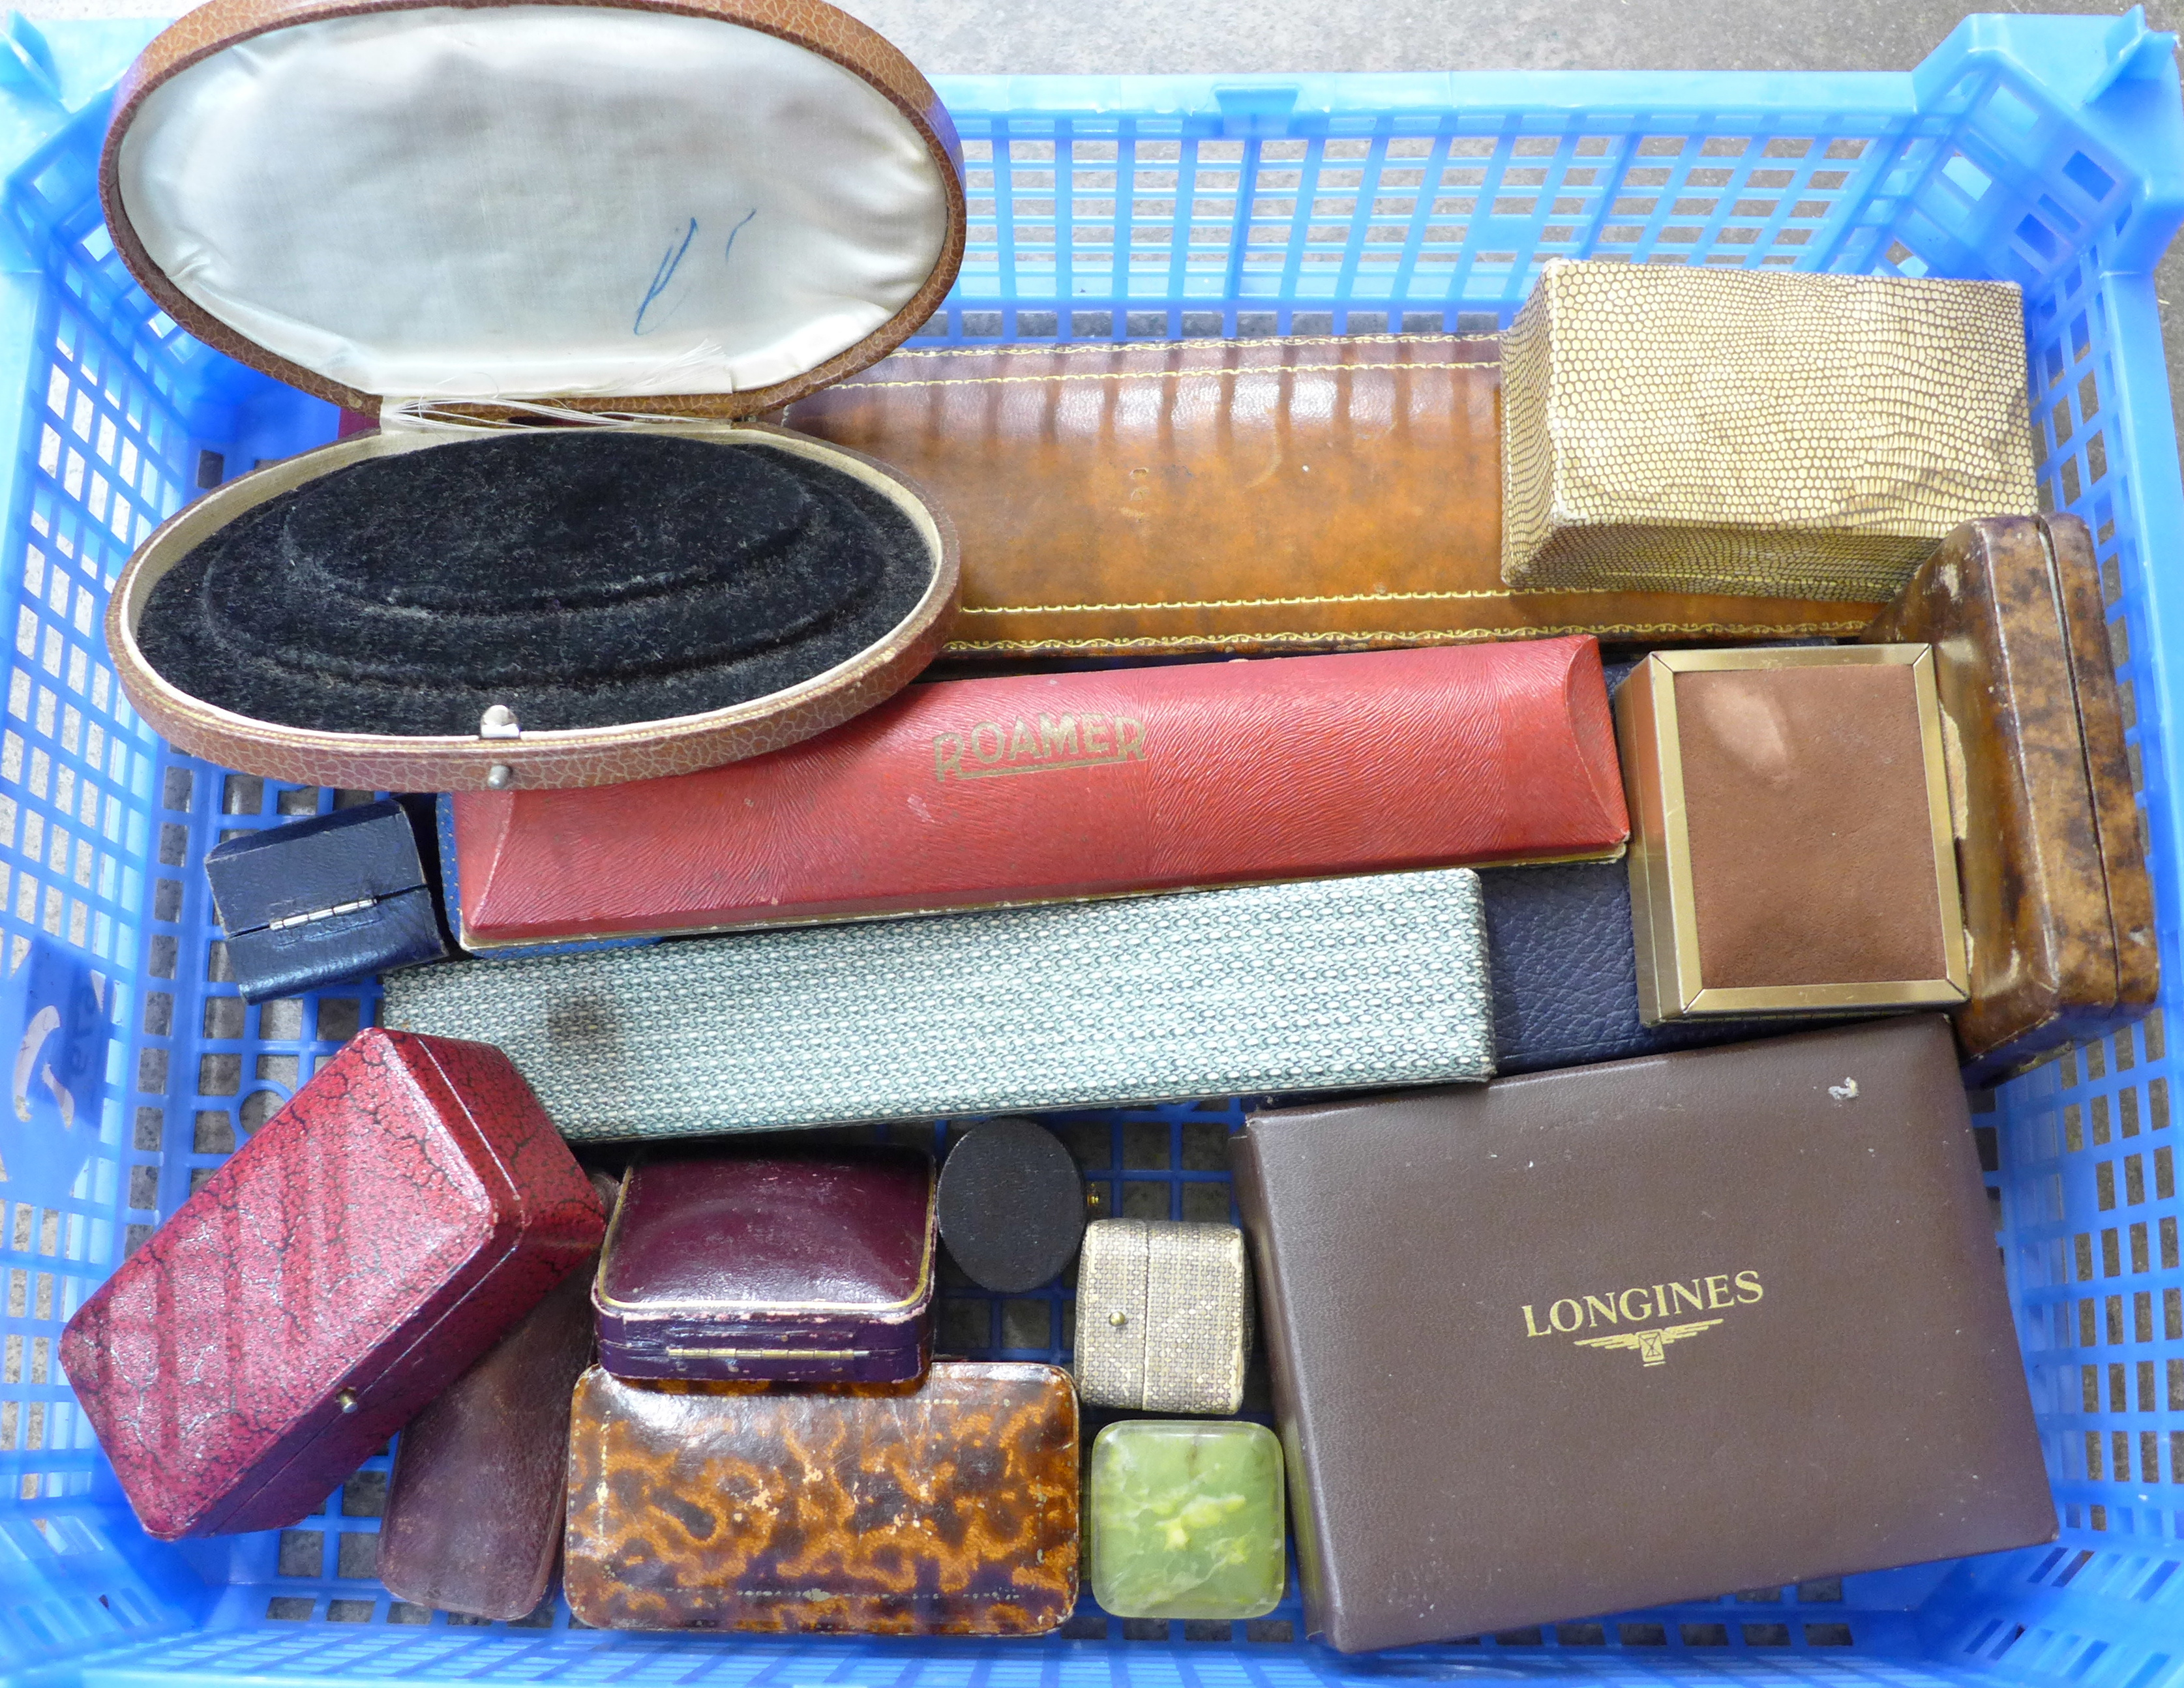 Lot 679 - Vintage jewellery boxes and watch boxes including Longines and Roamer